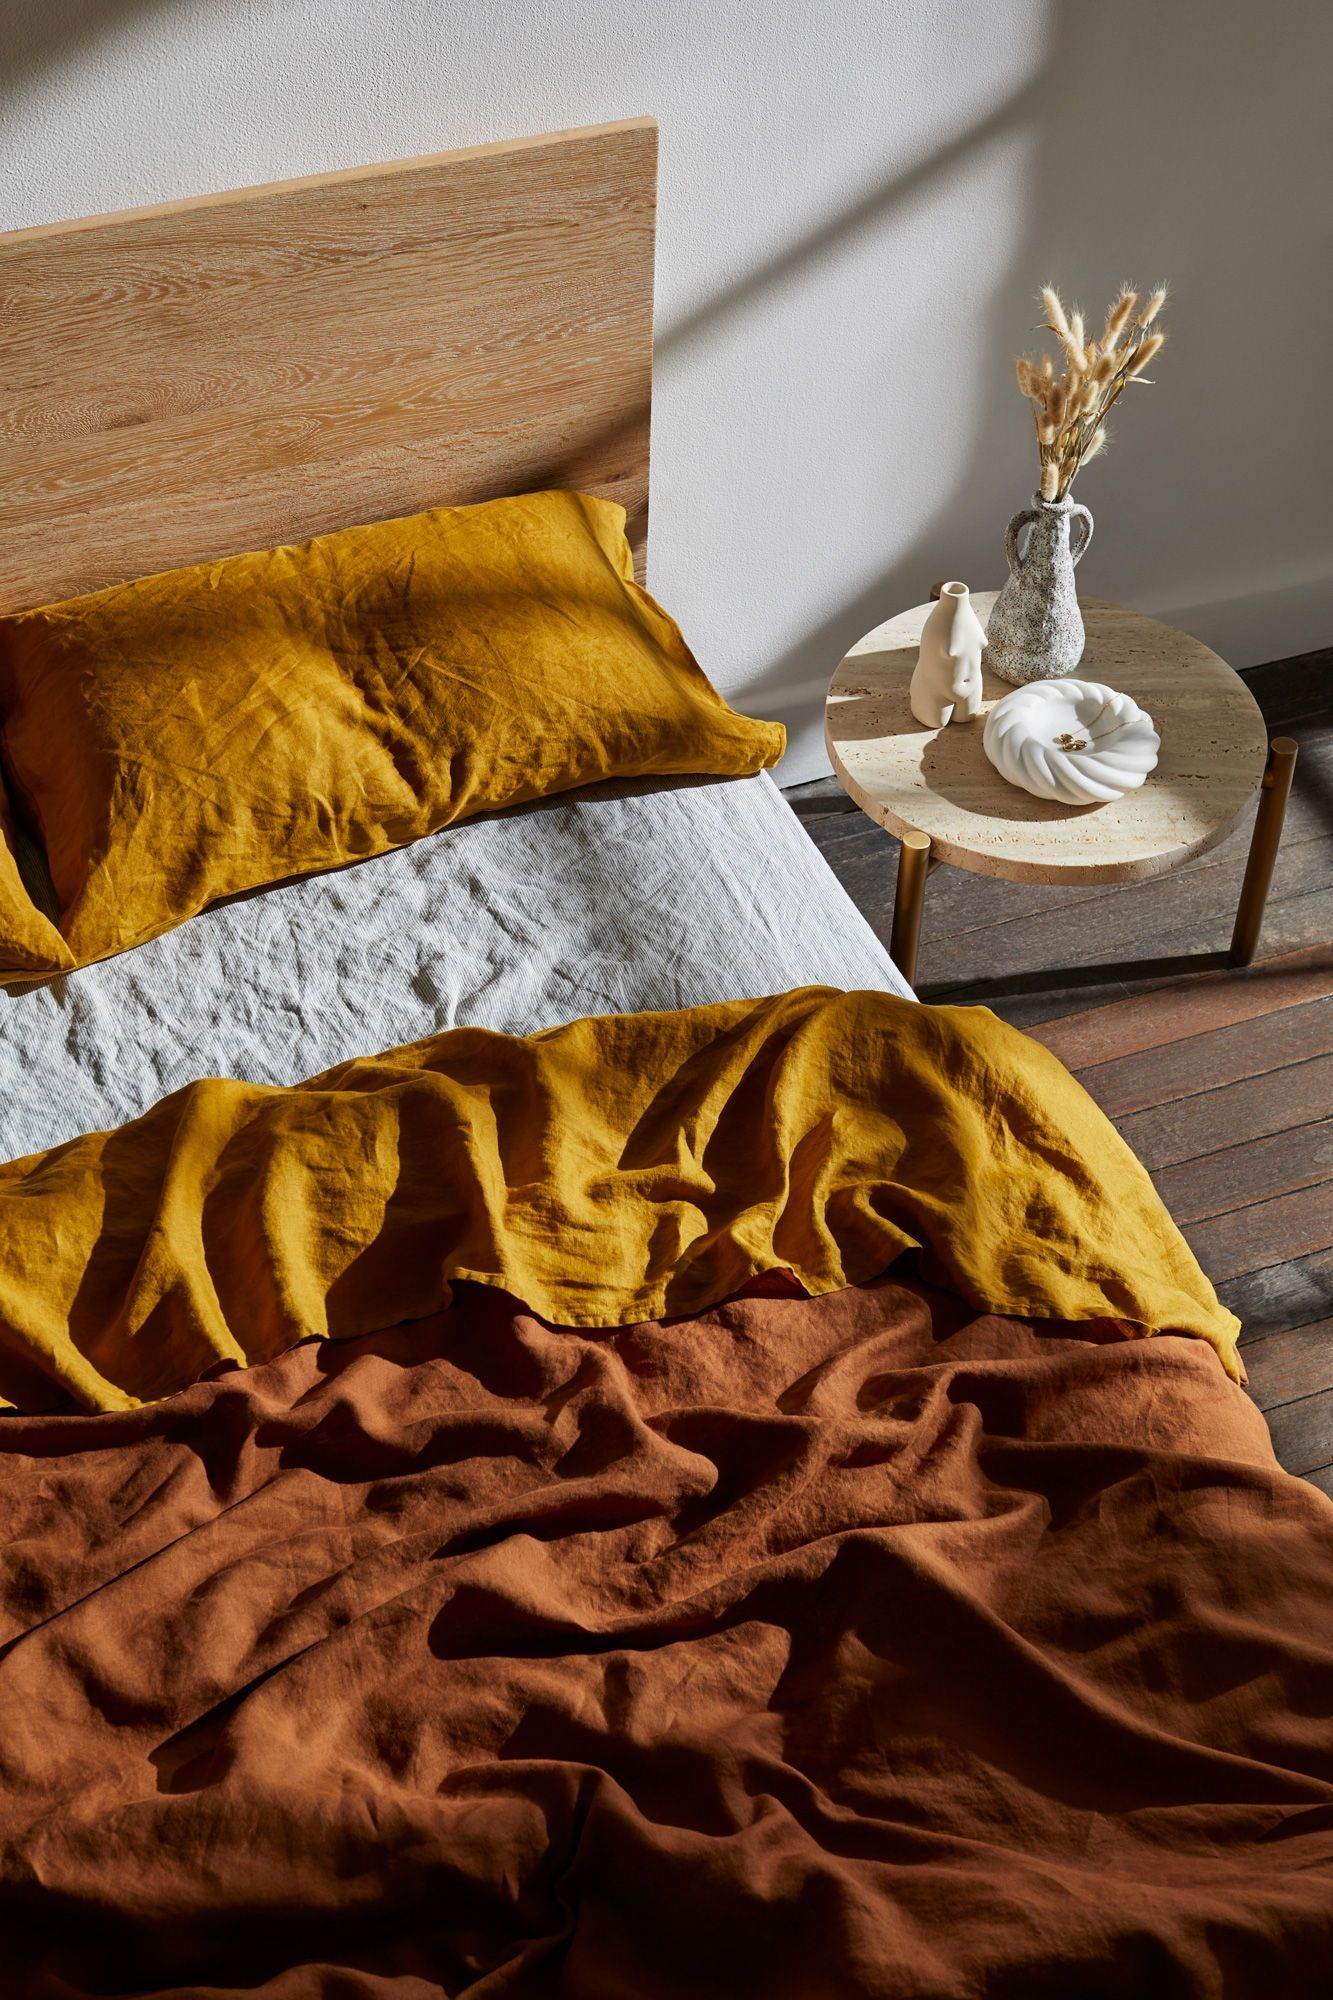 Turmeric 100 Flax Linen Bedding Set Bedding Flax Linen Linenbedideas Minimalistbedroommen Set Tur In 2020 Bed Linen Sets Bed Linens Luxury Summer Bedding